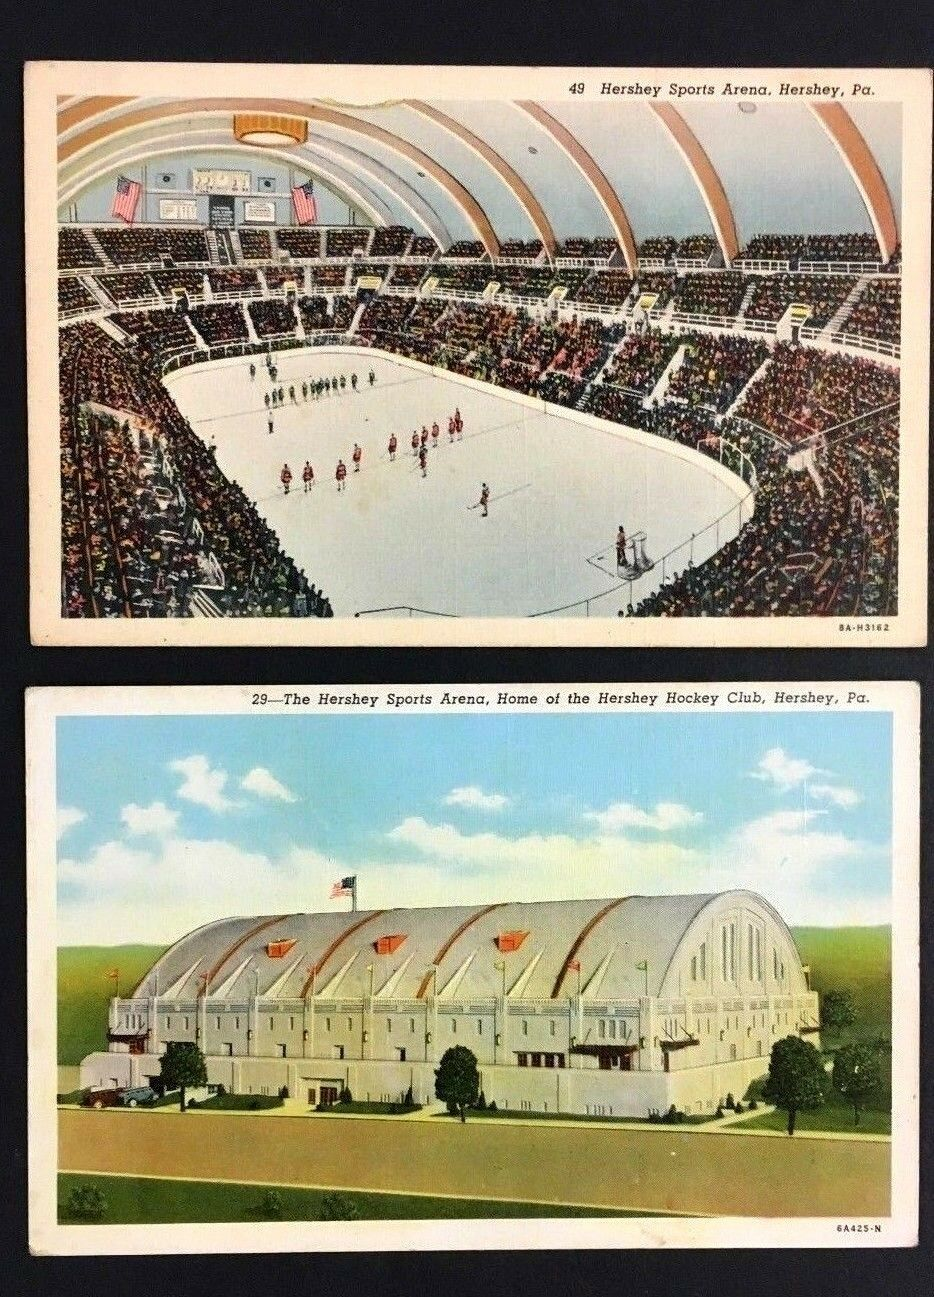 1940 Hershey Sports Arena Postcard Interior + Exterior Views Hockey Basketball